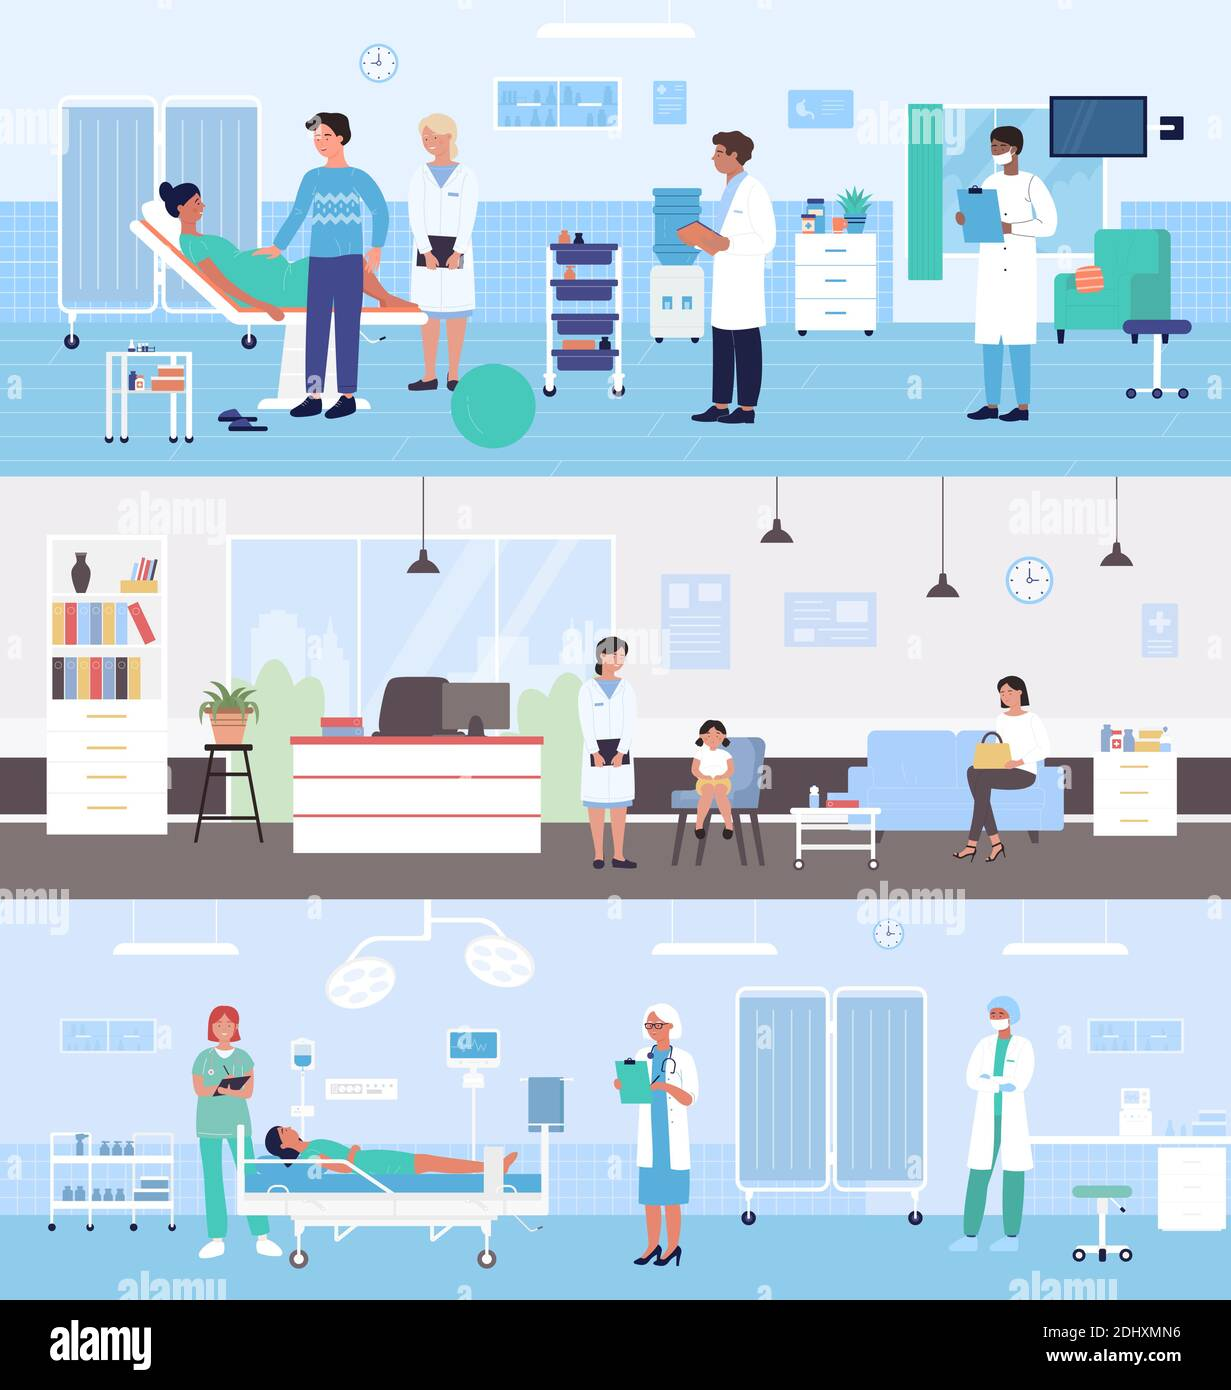 Healthcare medicine hospital service vector illustration set. Cartoon doctor character examining pregnant woman patient in medical ward, family with kid waiting pediatrician examination background Stock Vector